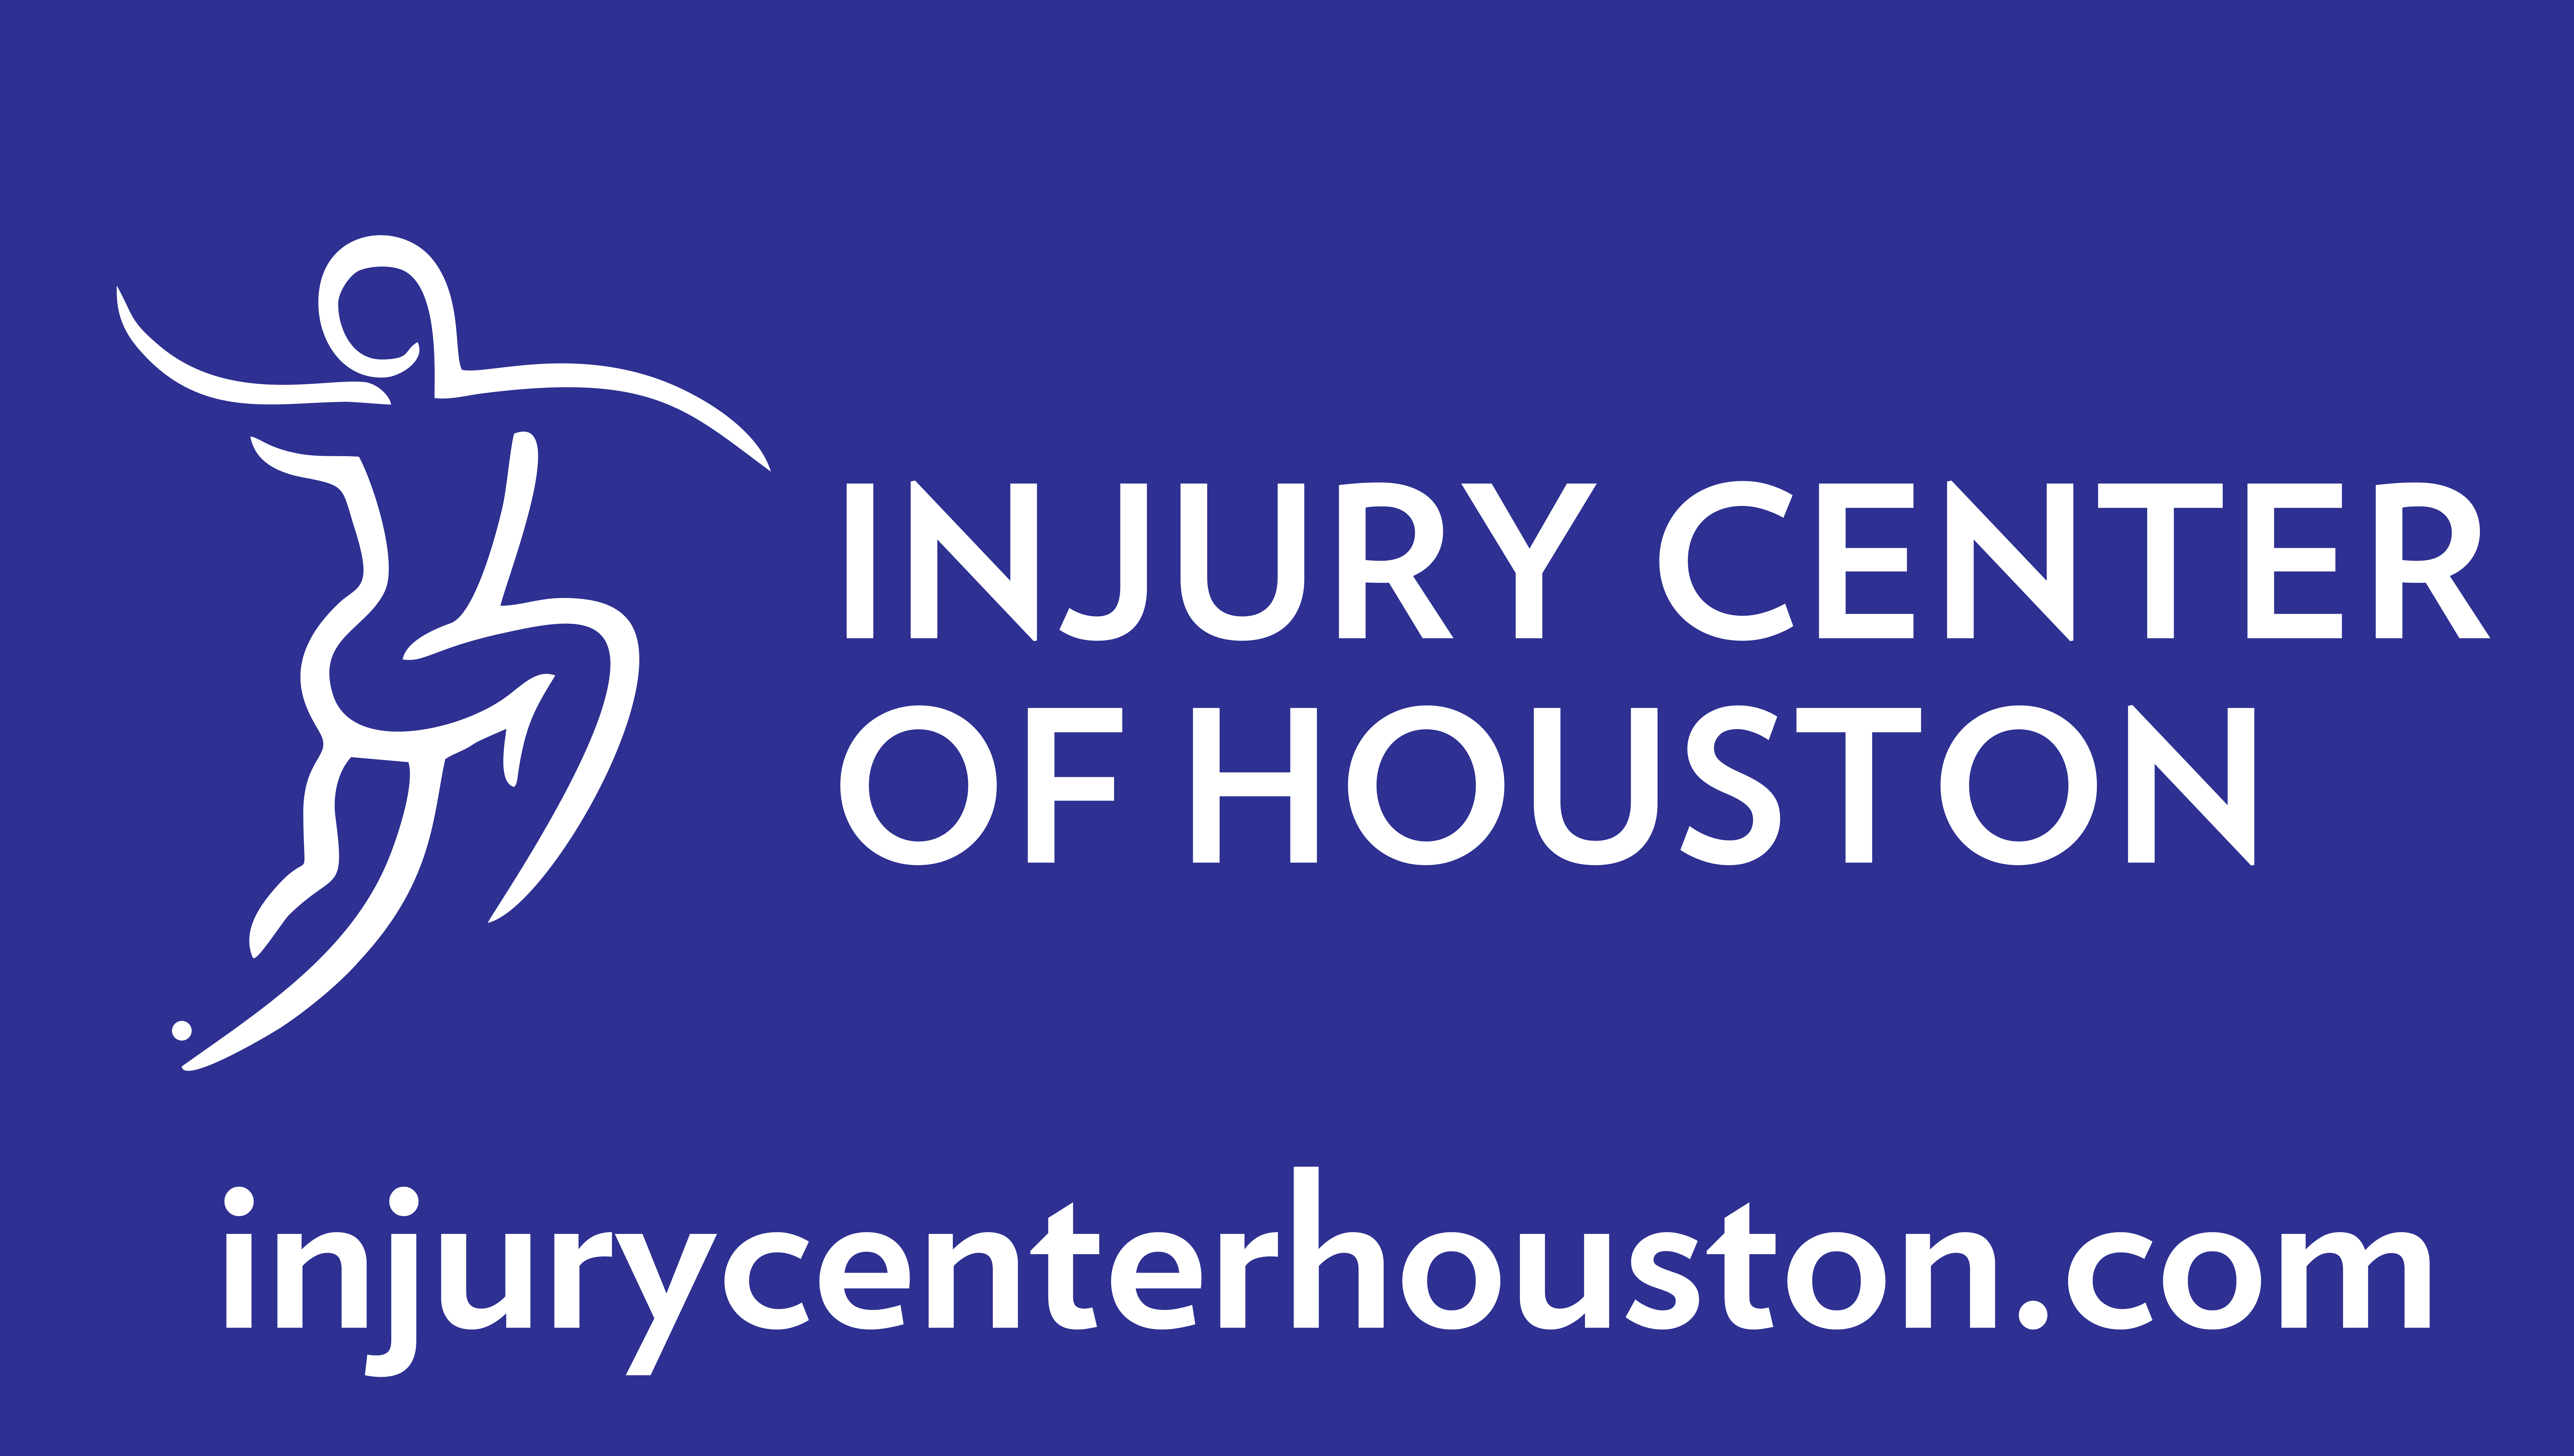 Injury Center of Houston